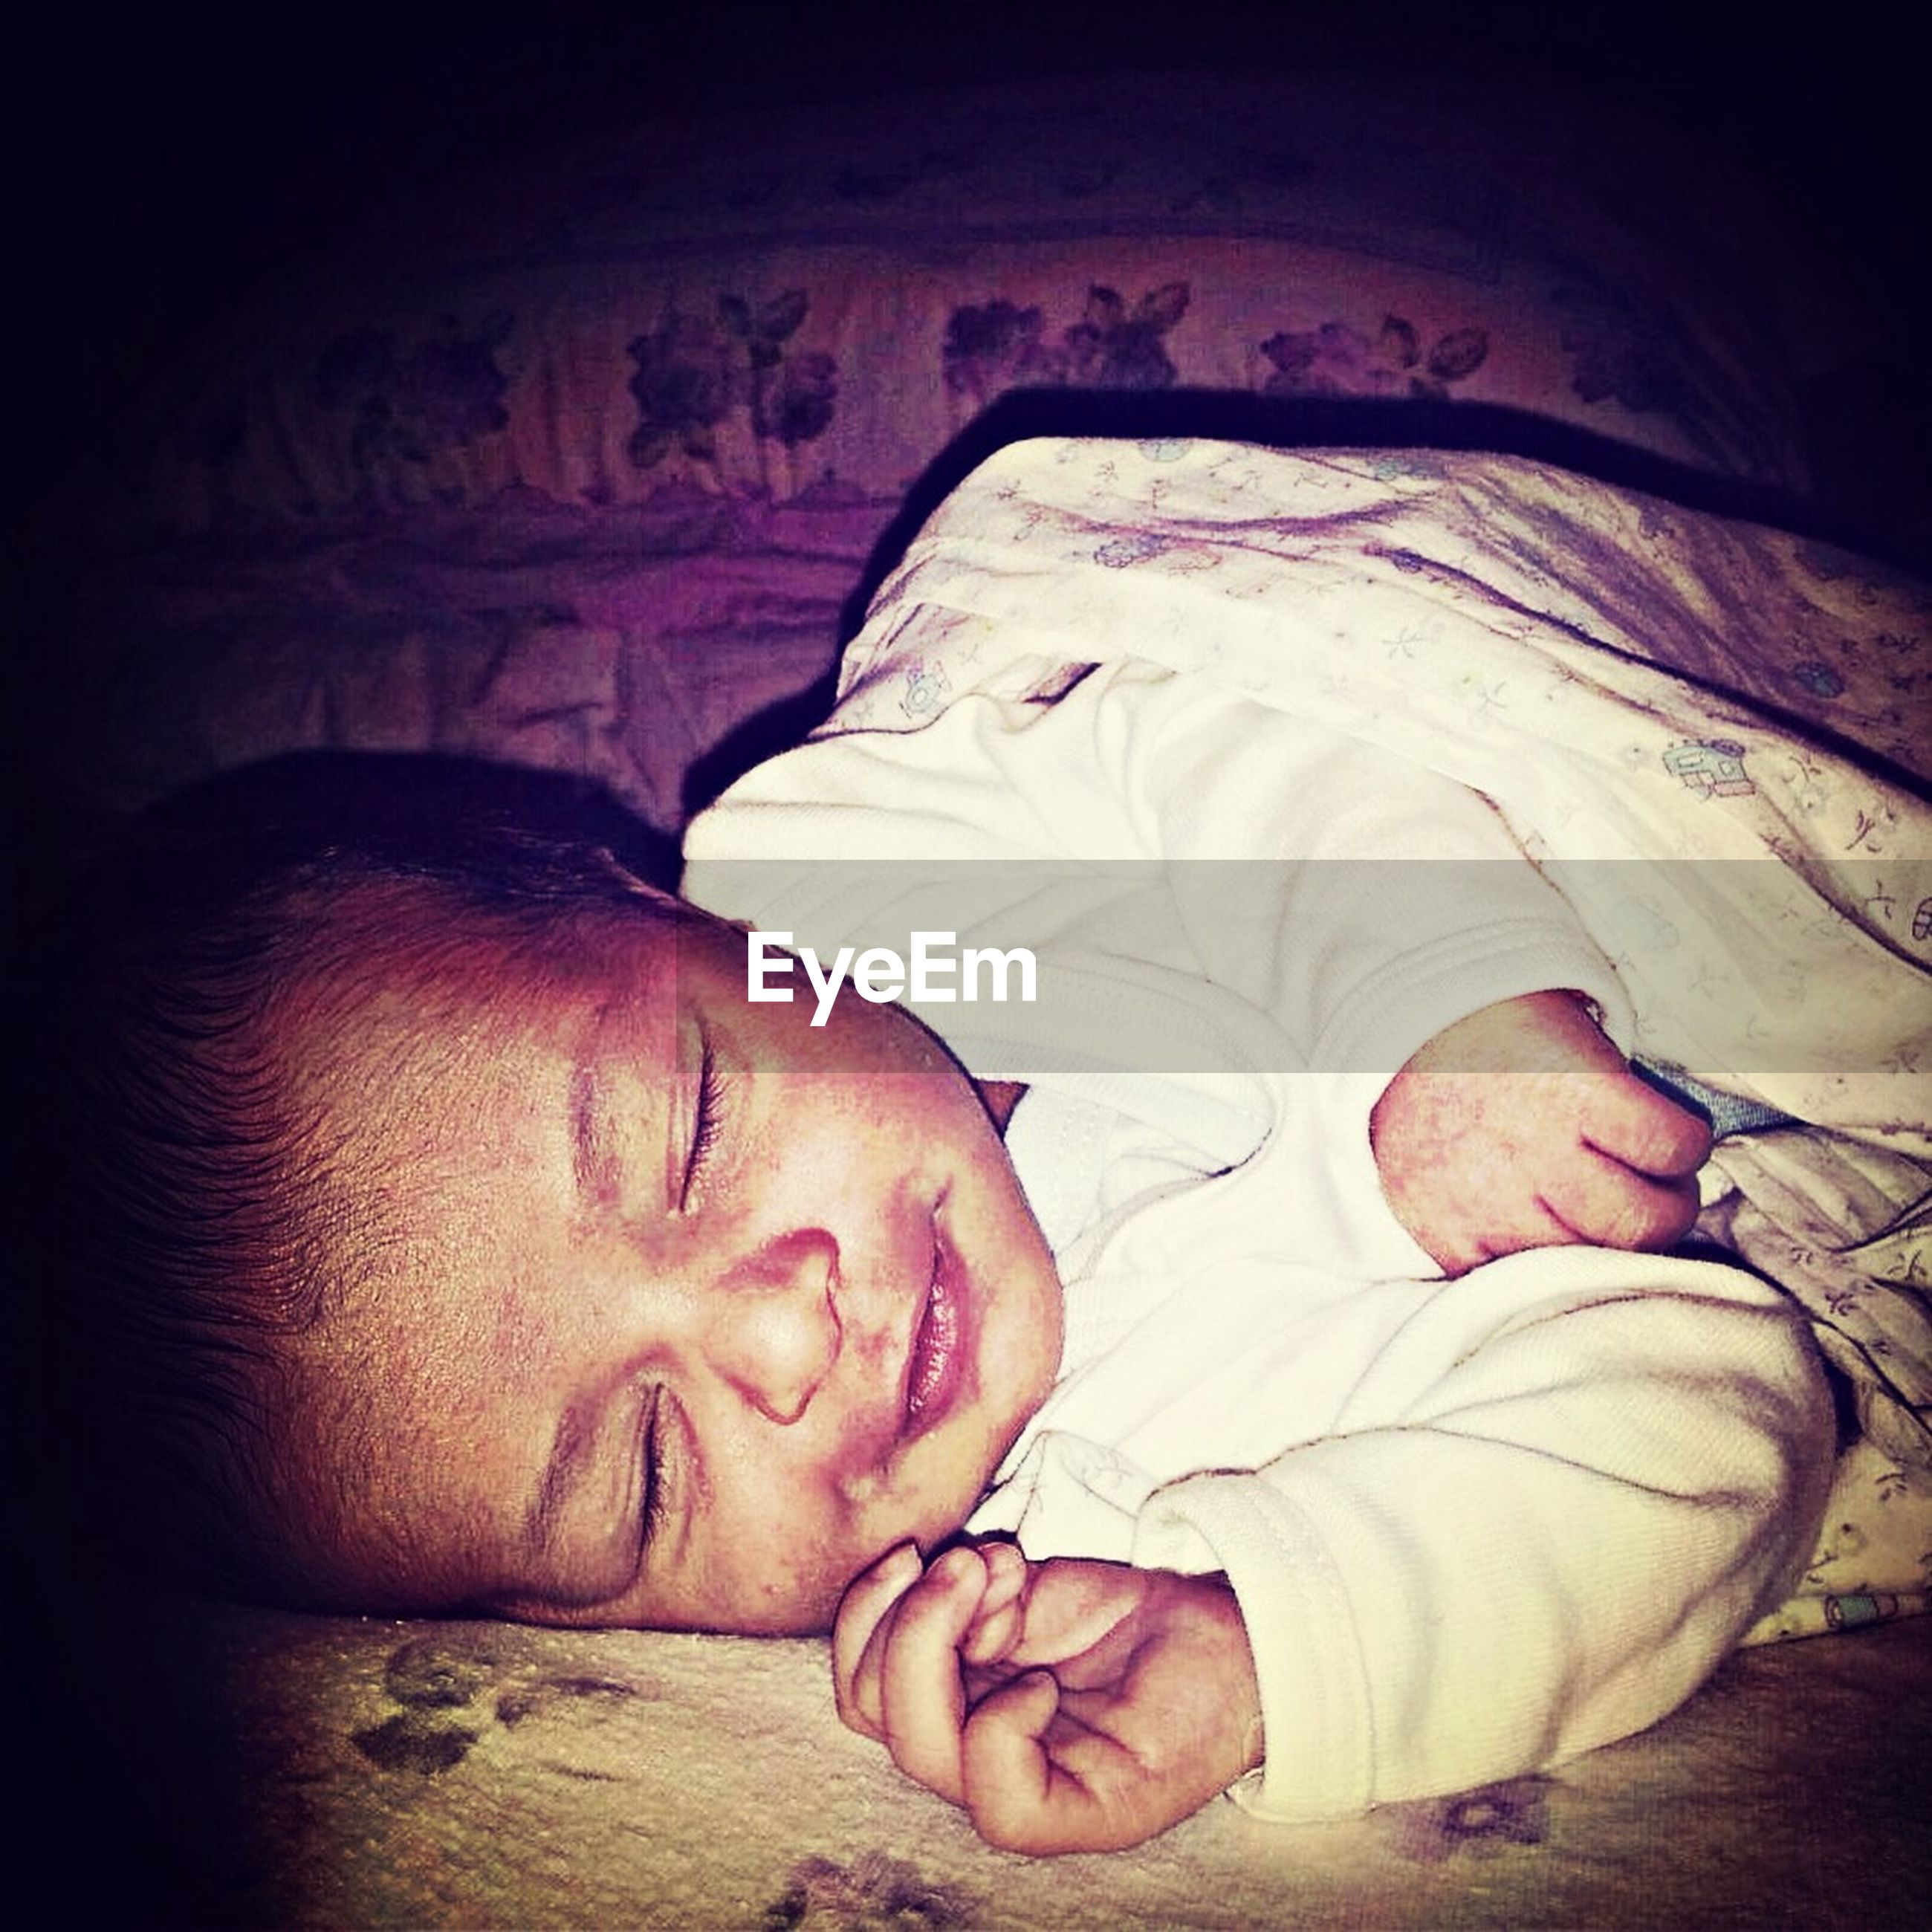 indoors, sleeping, relaxation, lifestyles, childhood, person, leisure activity, lying down, baby, innocence, casual clothing, eyes closed, love, bed, babyhood, bonding, togetherness, resting